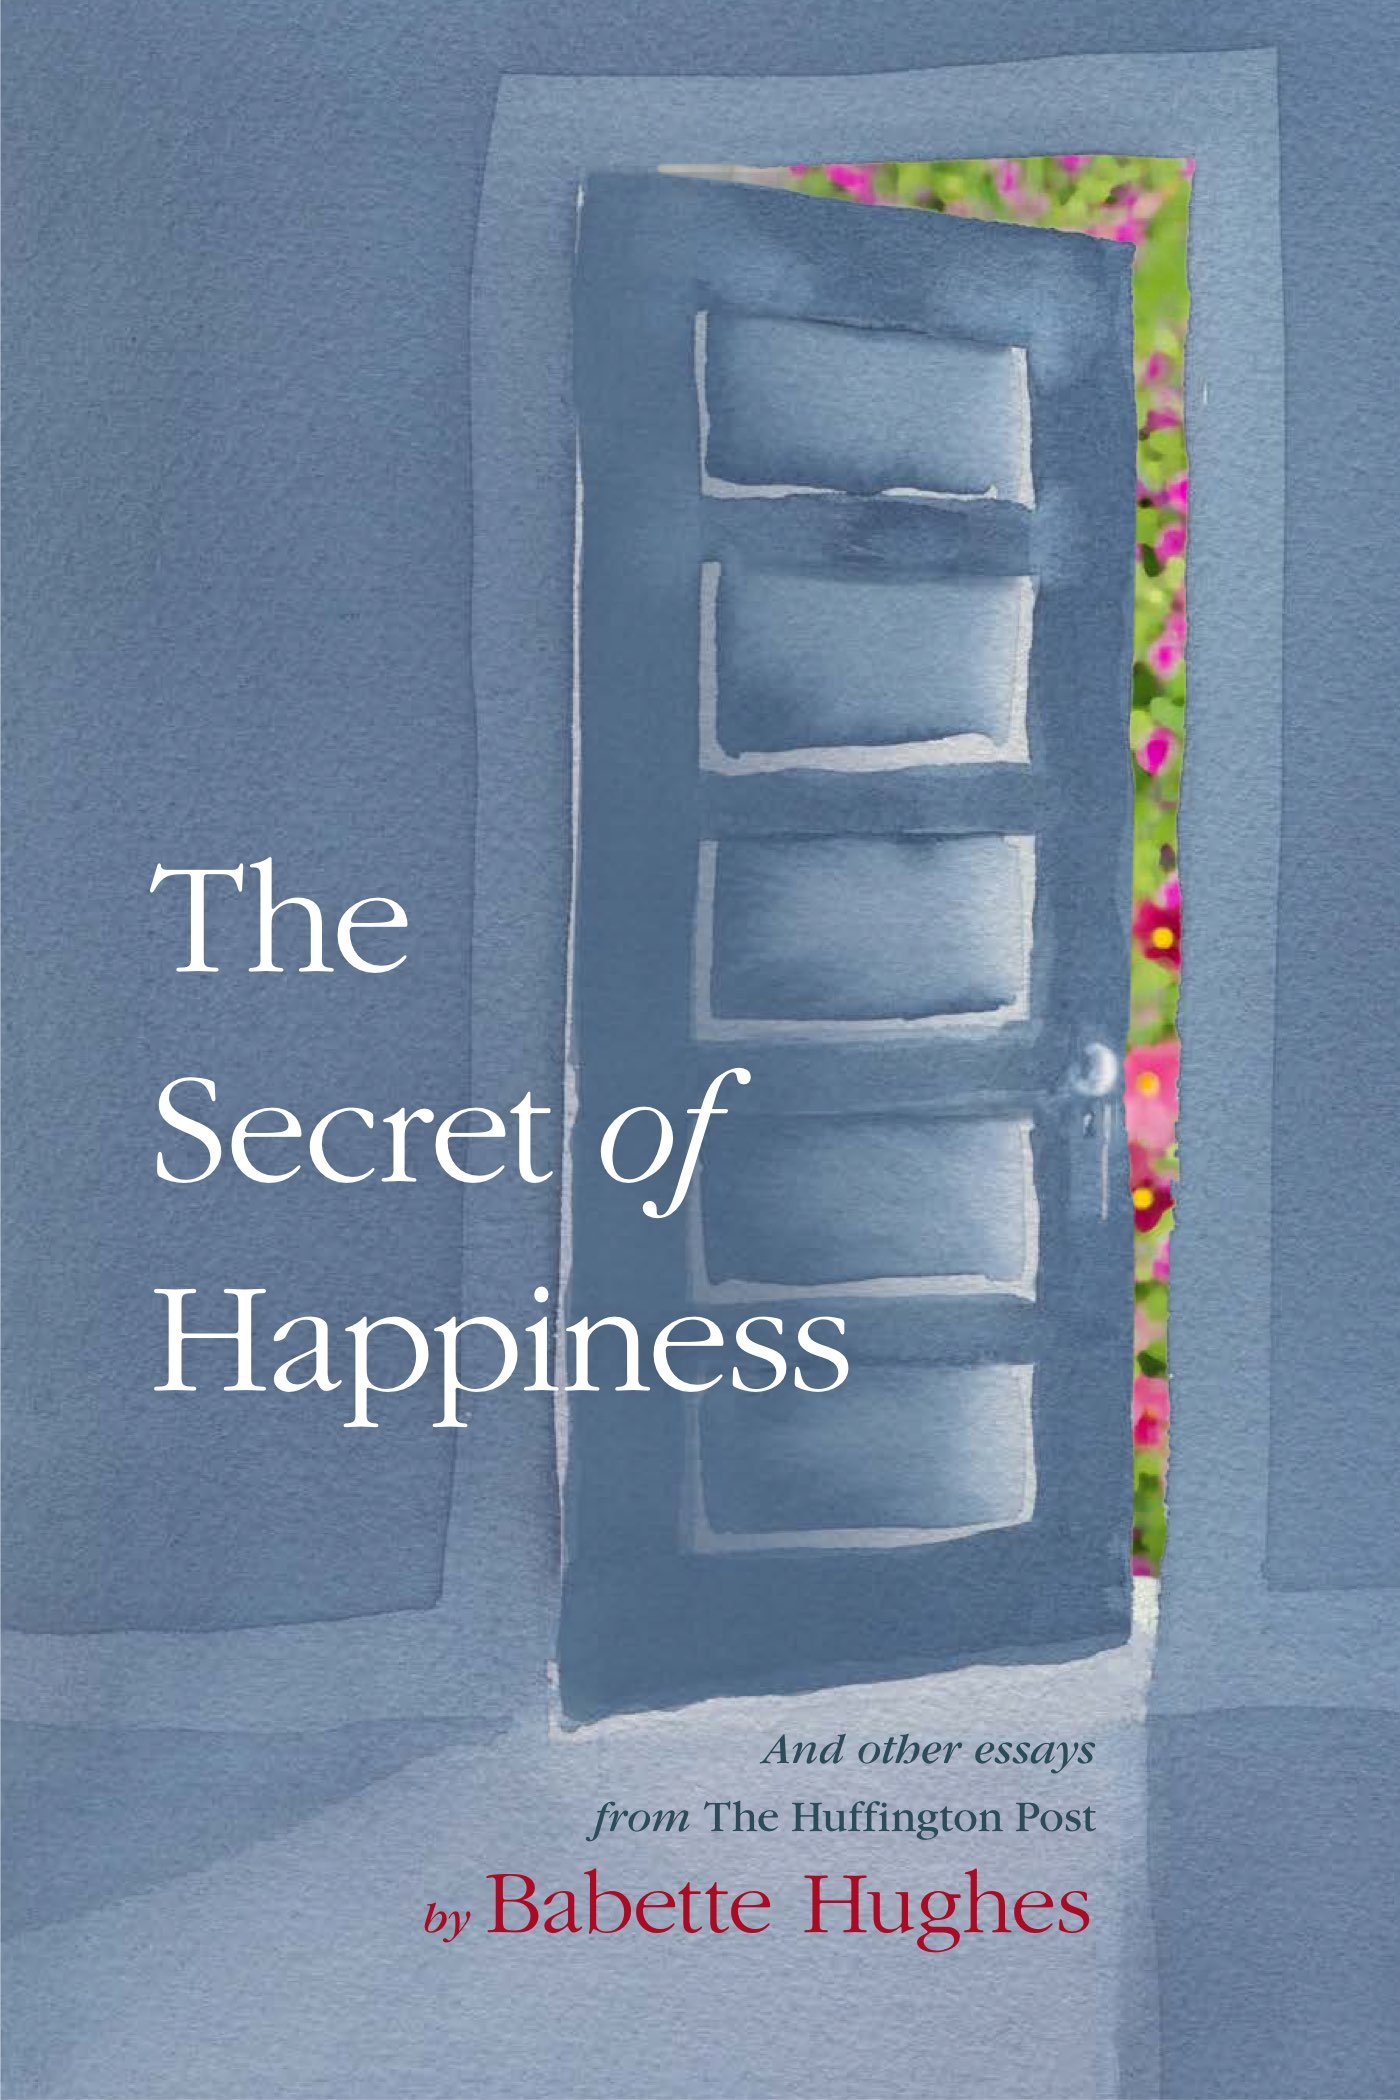 The Secret of Happiness by Babette Hughes